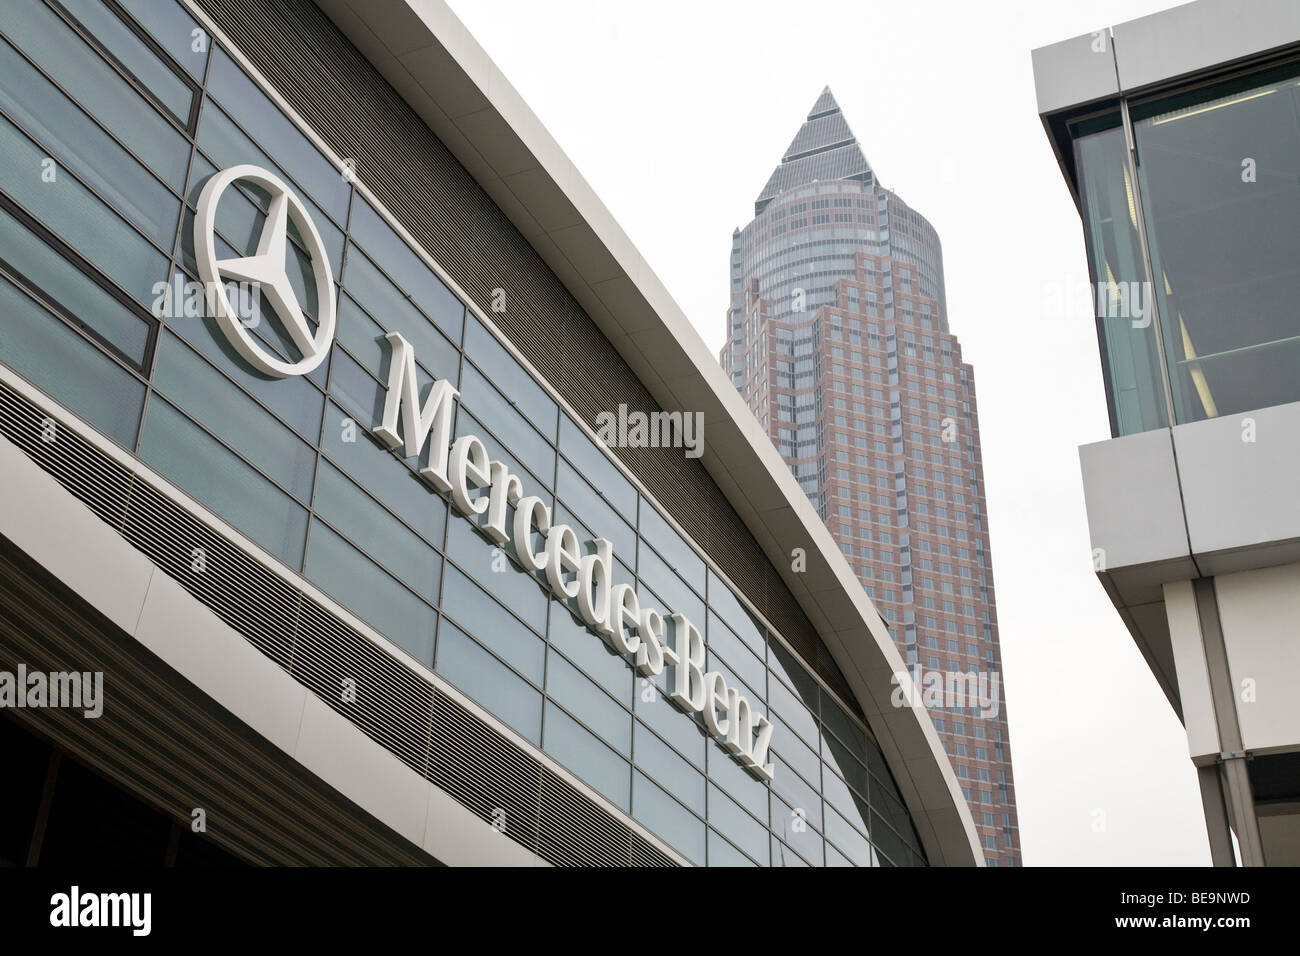 Motor Show Mercedes sign and Frankfurt Messe MesseTurm Trade Fair Tower in the Messegelande complex Stock Photo